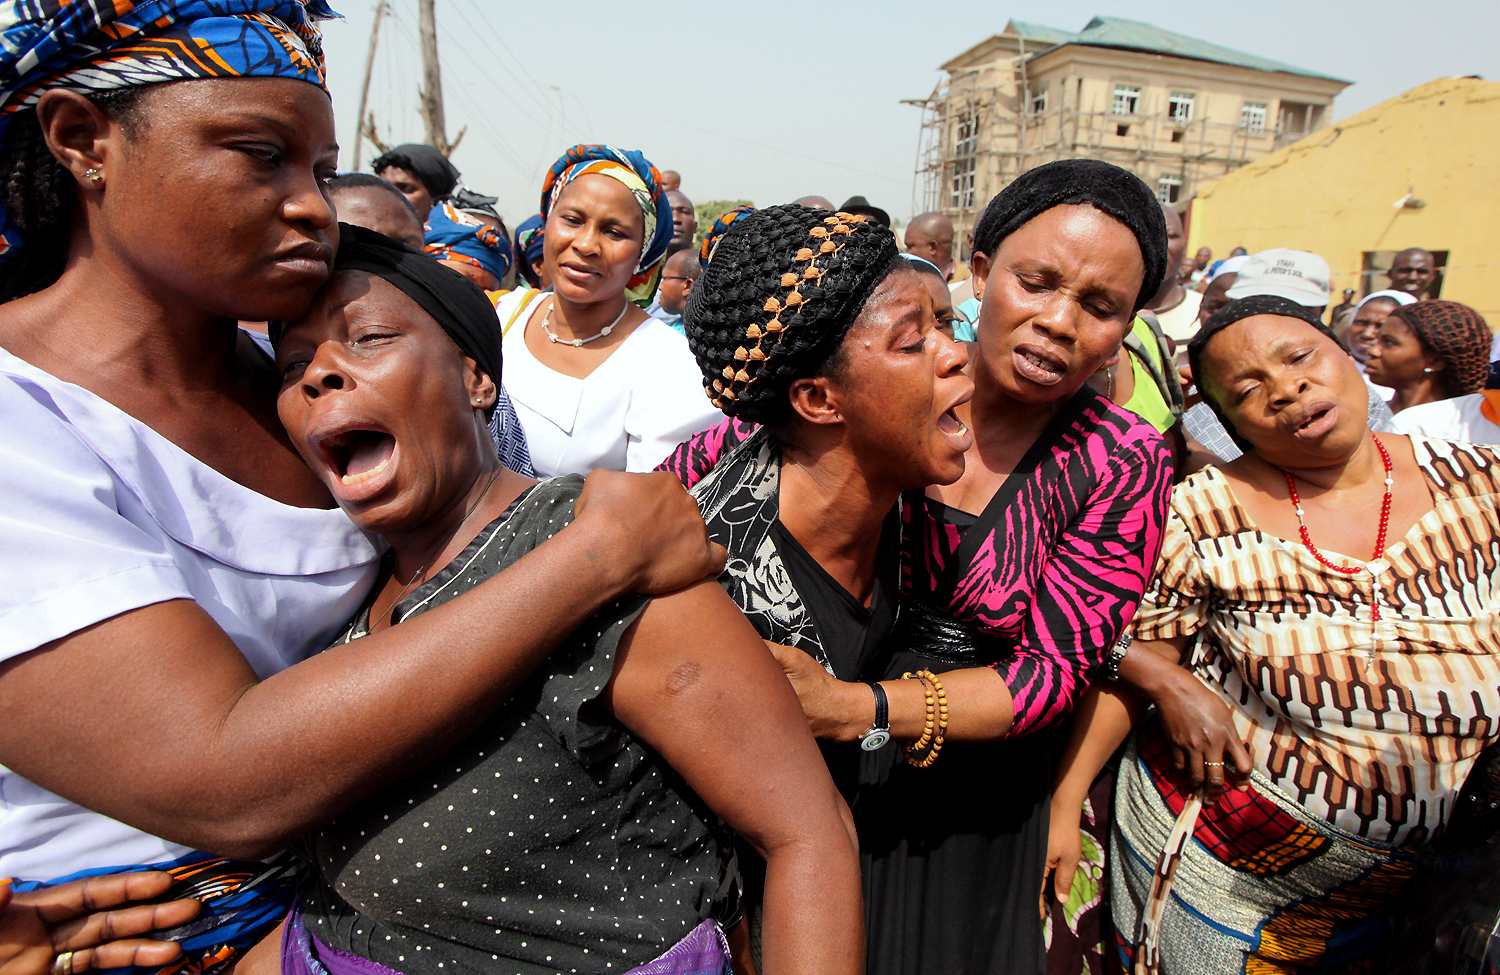 Report: Nigeria 'Close to' Genocide of Christians